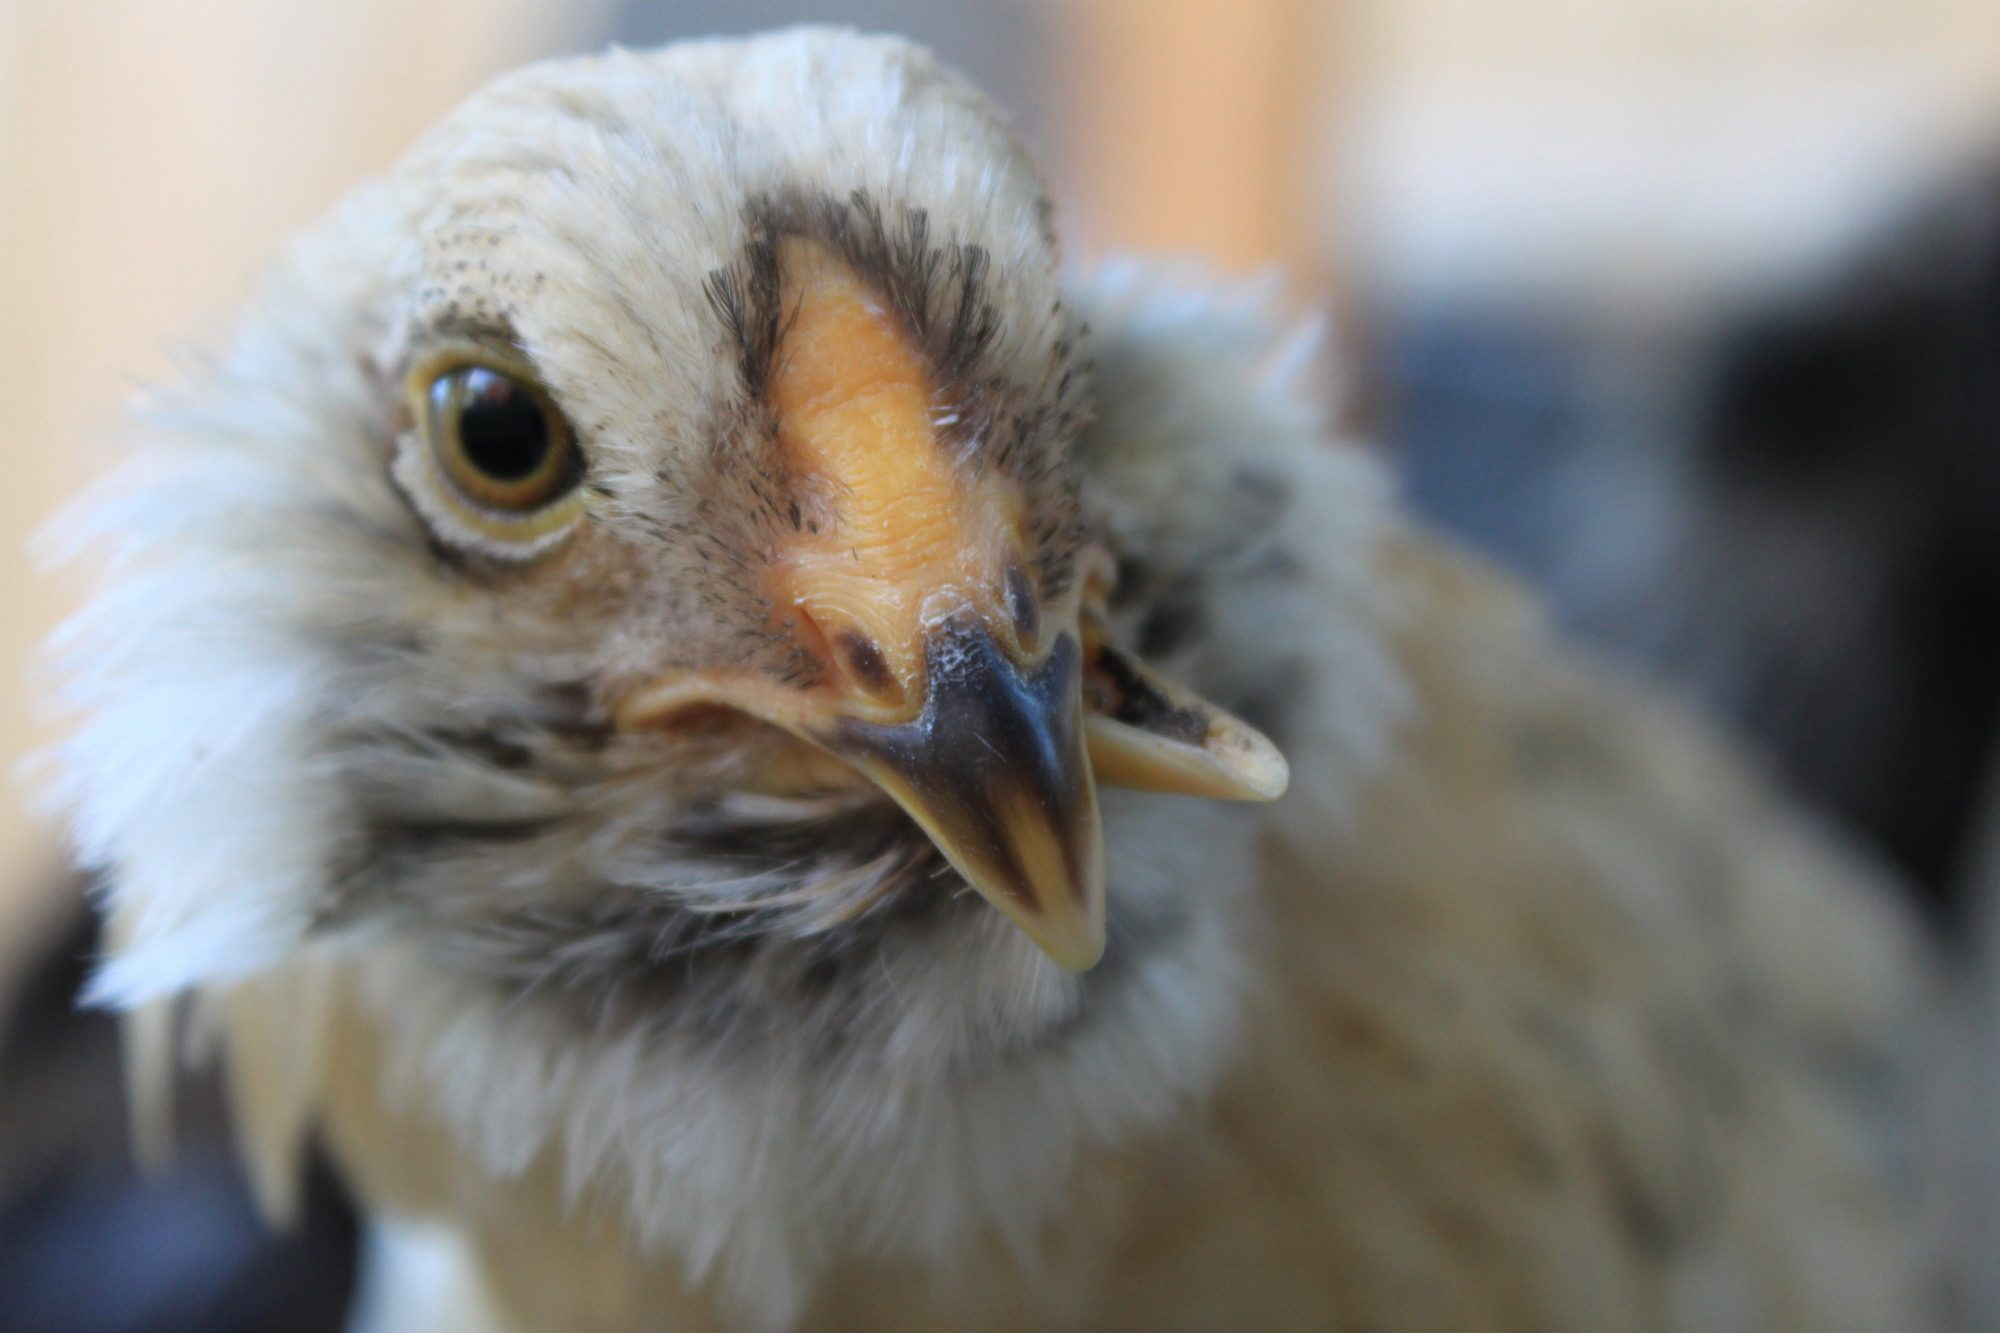 Caring For Cross Beaked And Other Special Needs Chickens ...